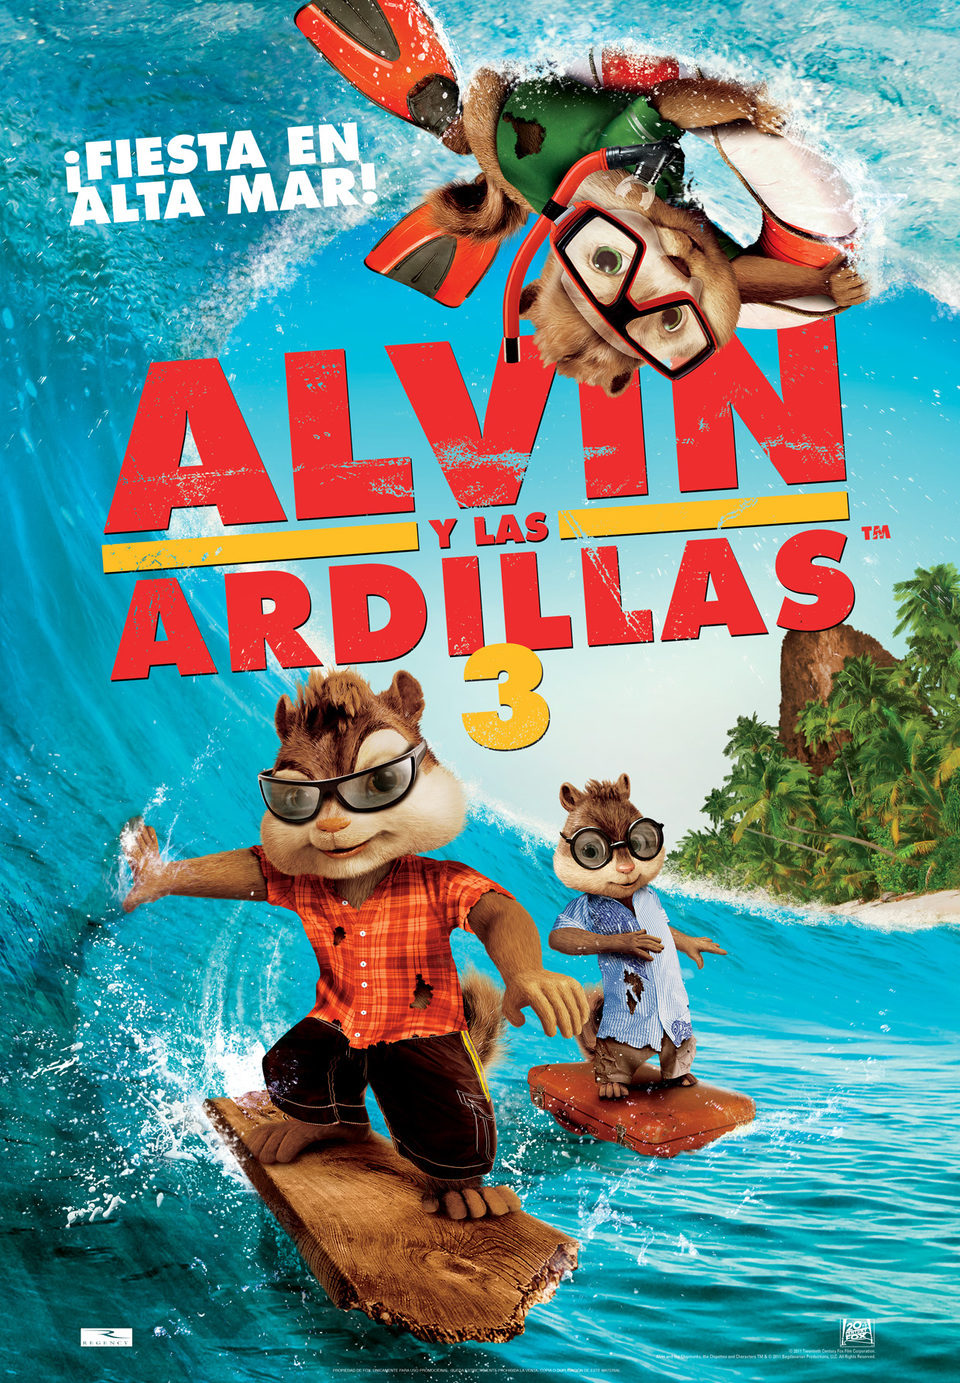 Alvin And The Chipmunks 3 Images españa poster for alvin and the chipmunks 3: chipwrecked